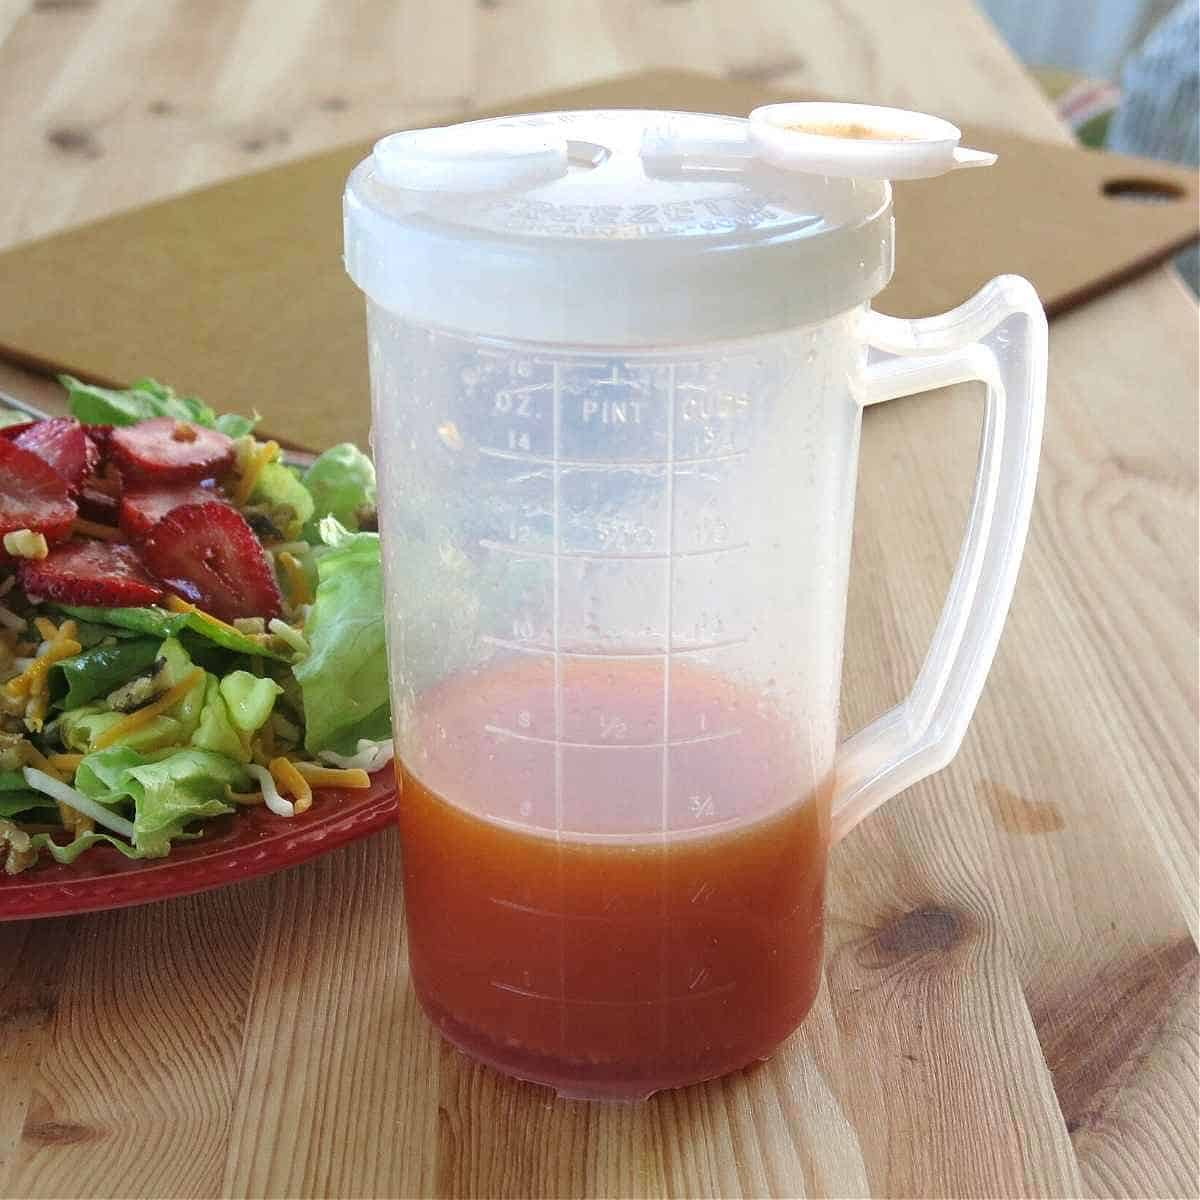 Red wine vinegar dressing in plastic container with measurement markings with strawberry salad next to it.